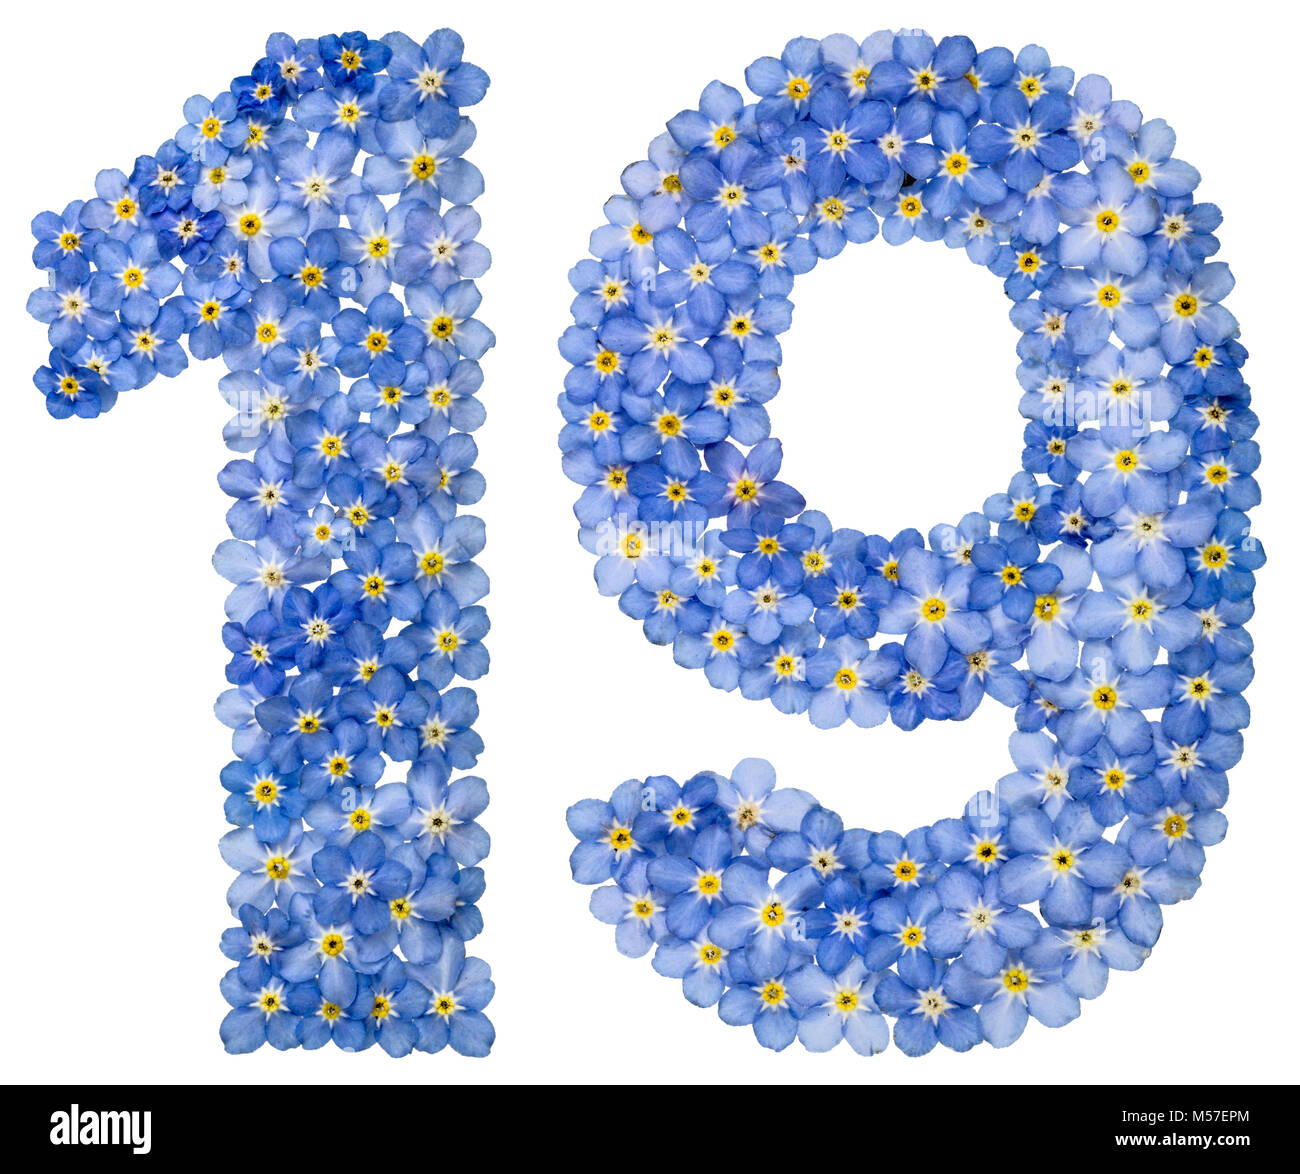 Arabic numeral 19, nineteen, from blue forget-me-not flowers - Stock Image